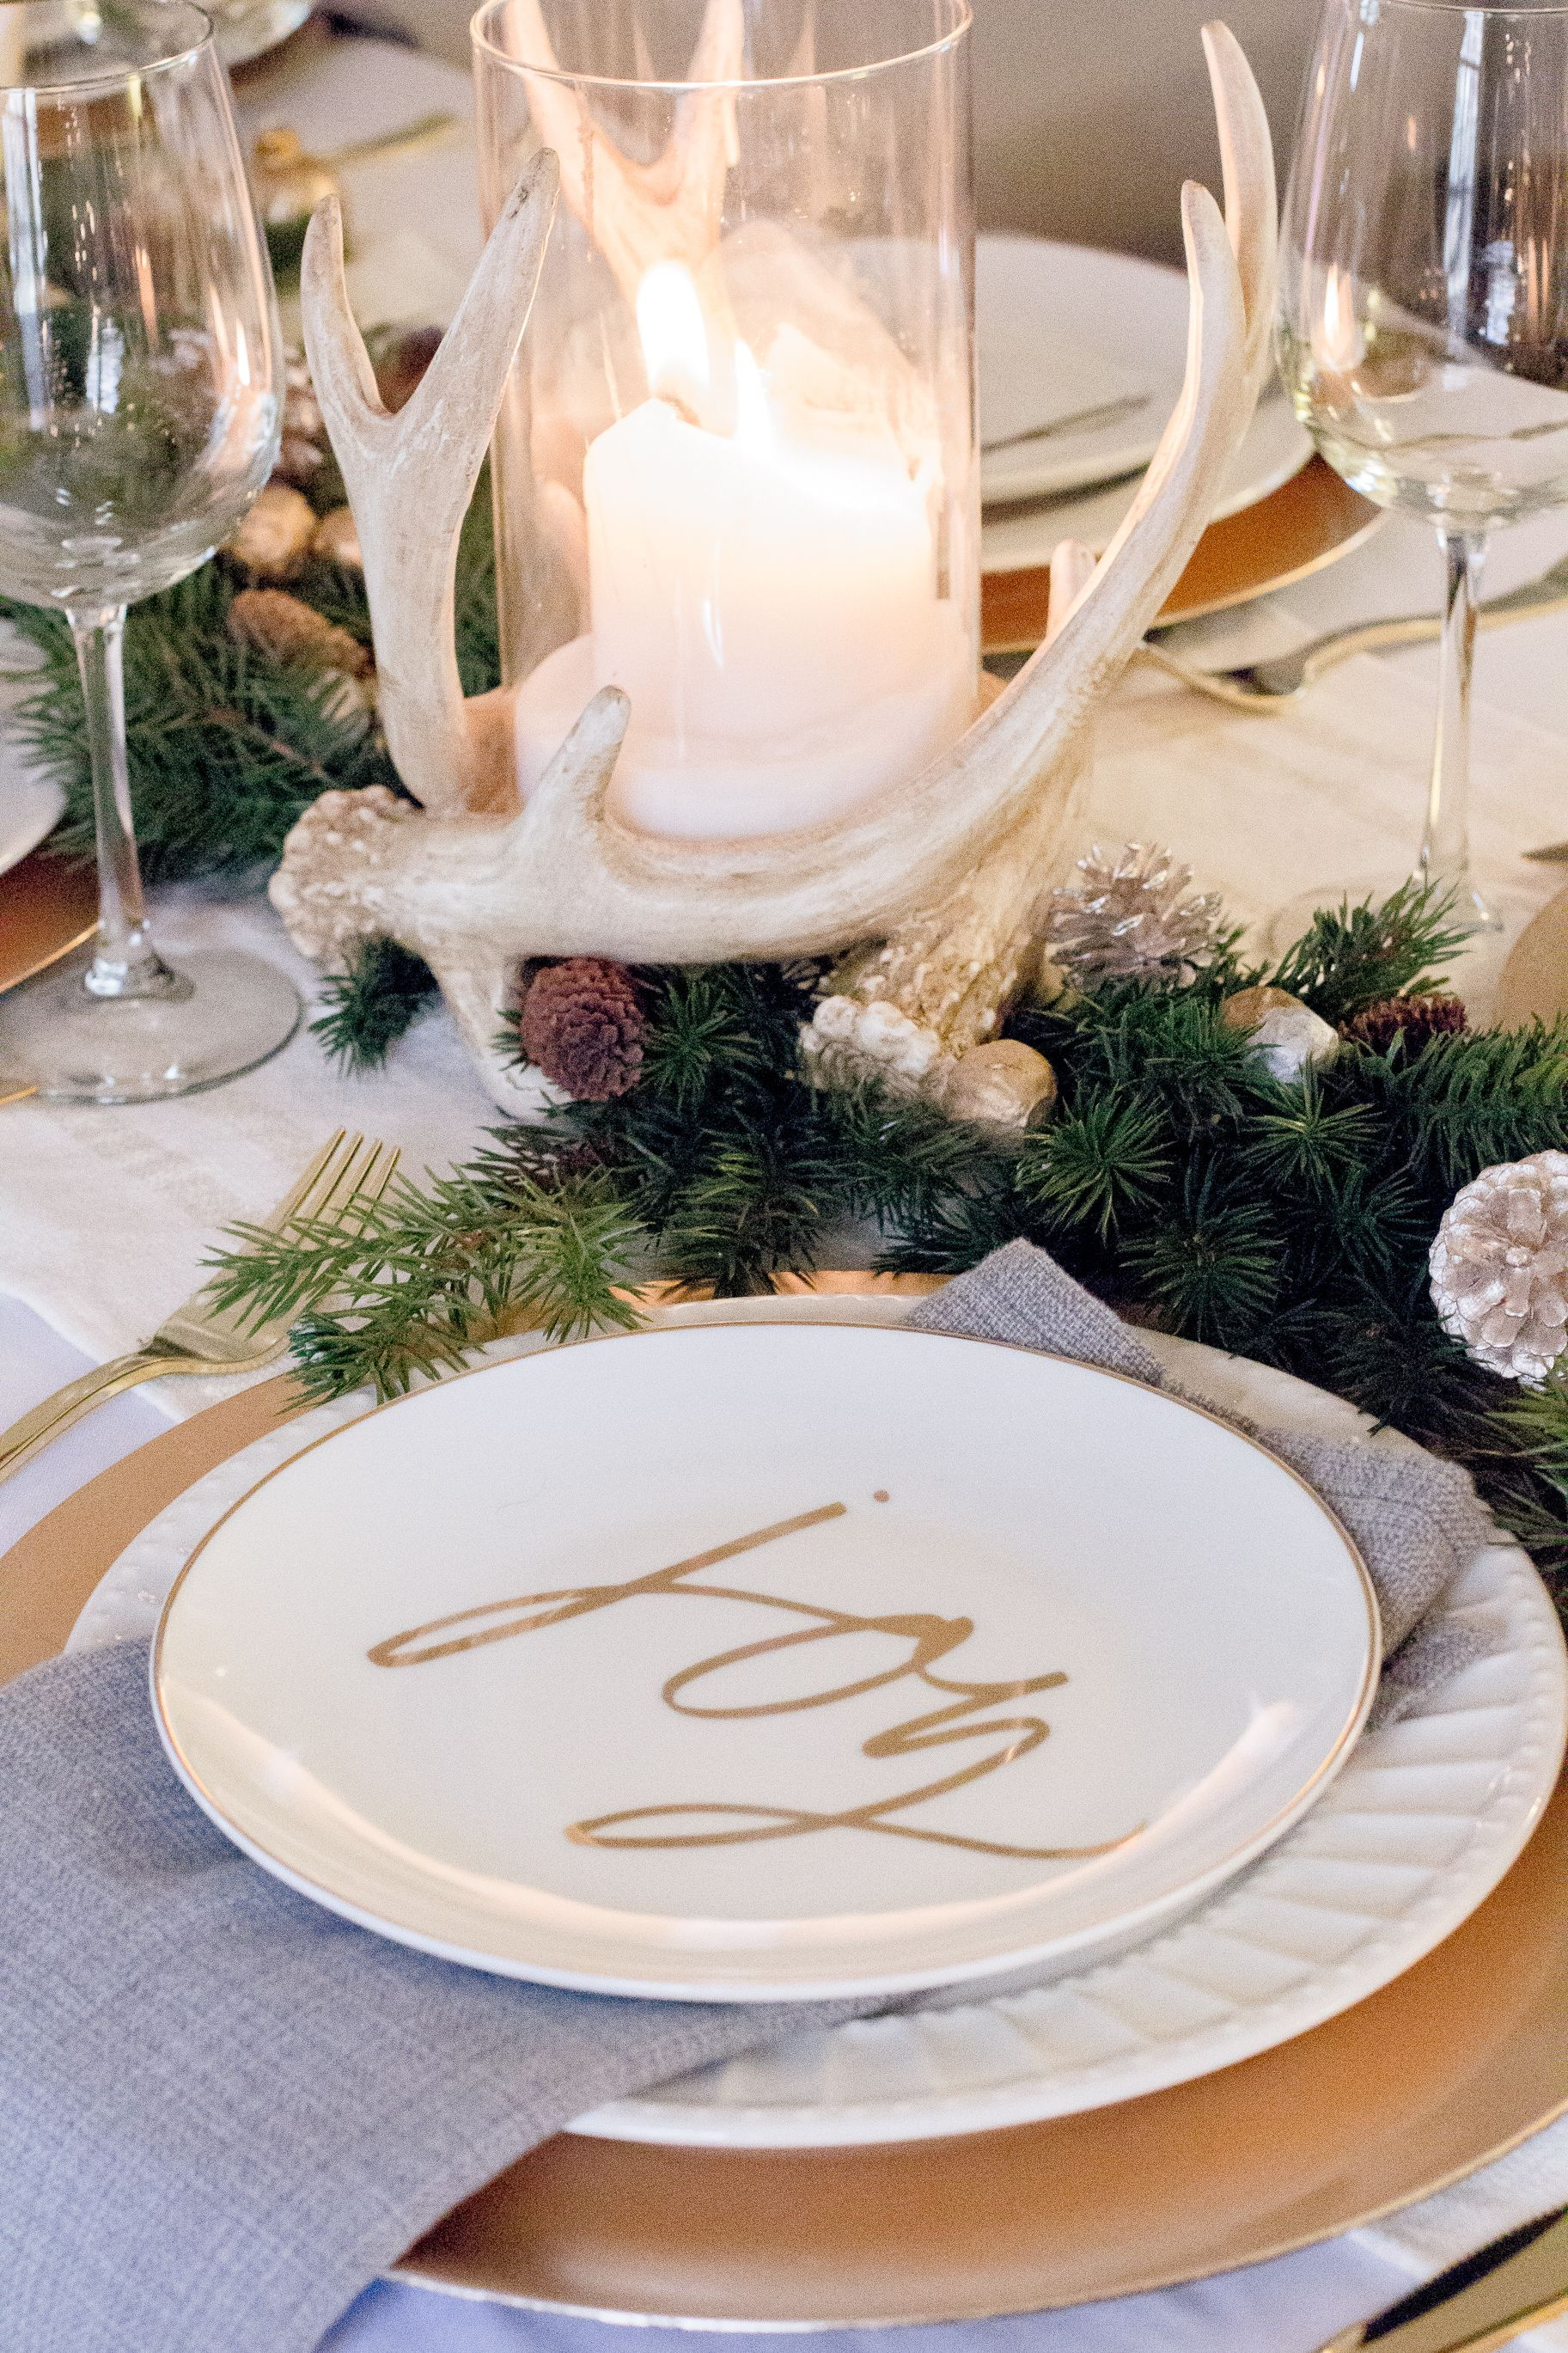 3 Tips for Holiday Hosting at Home